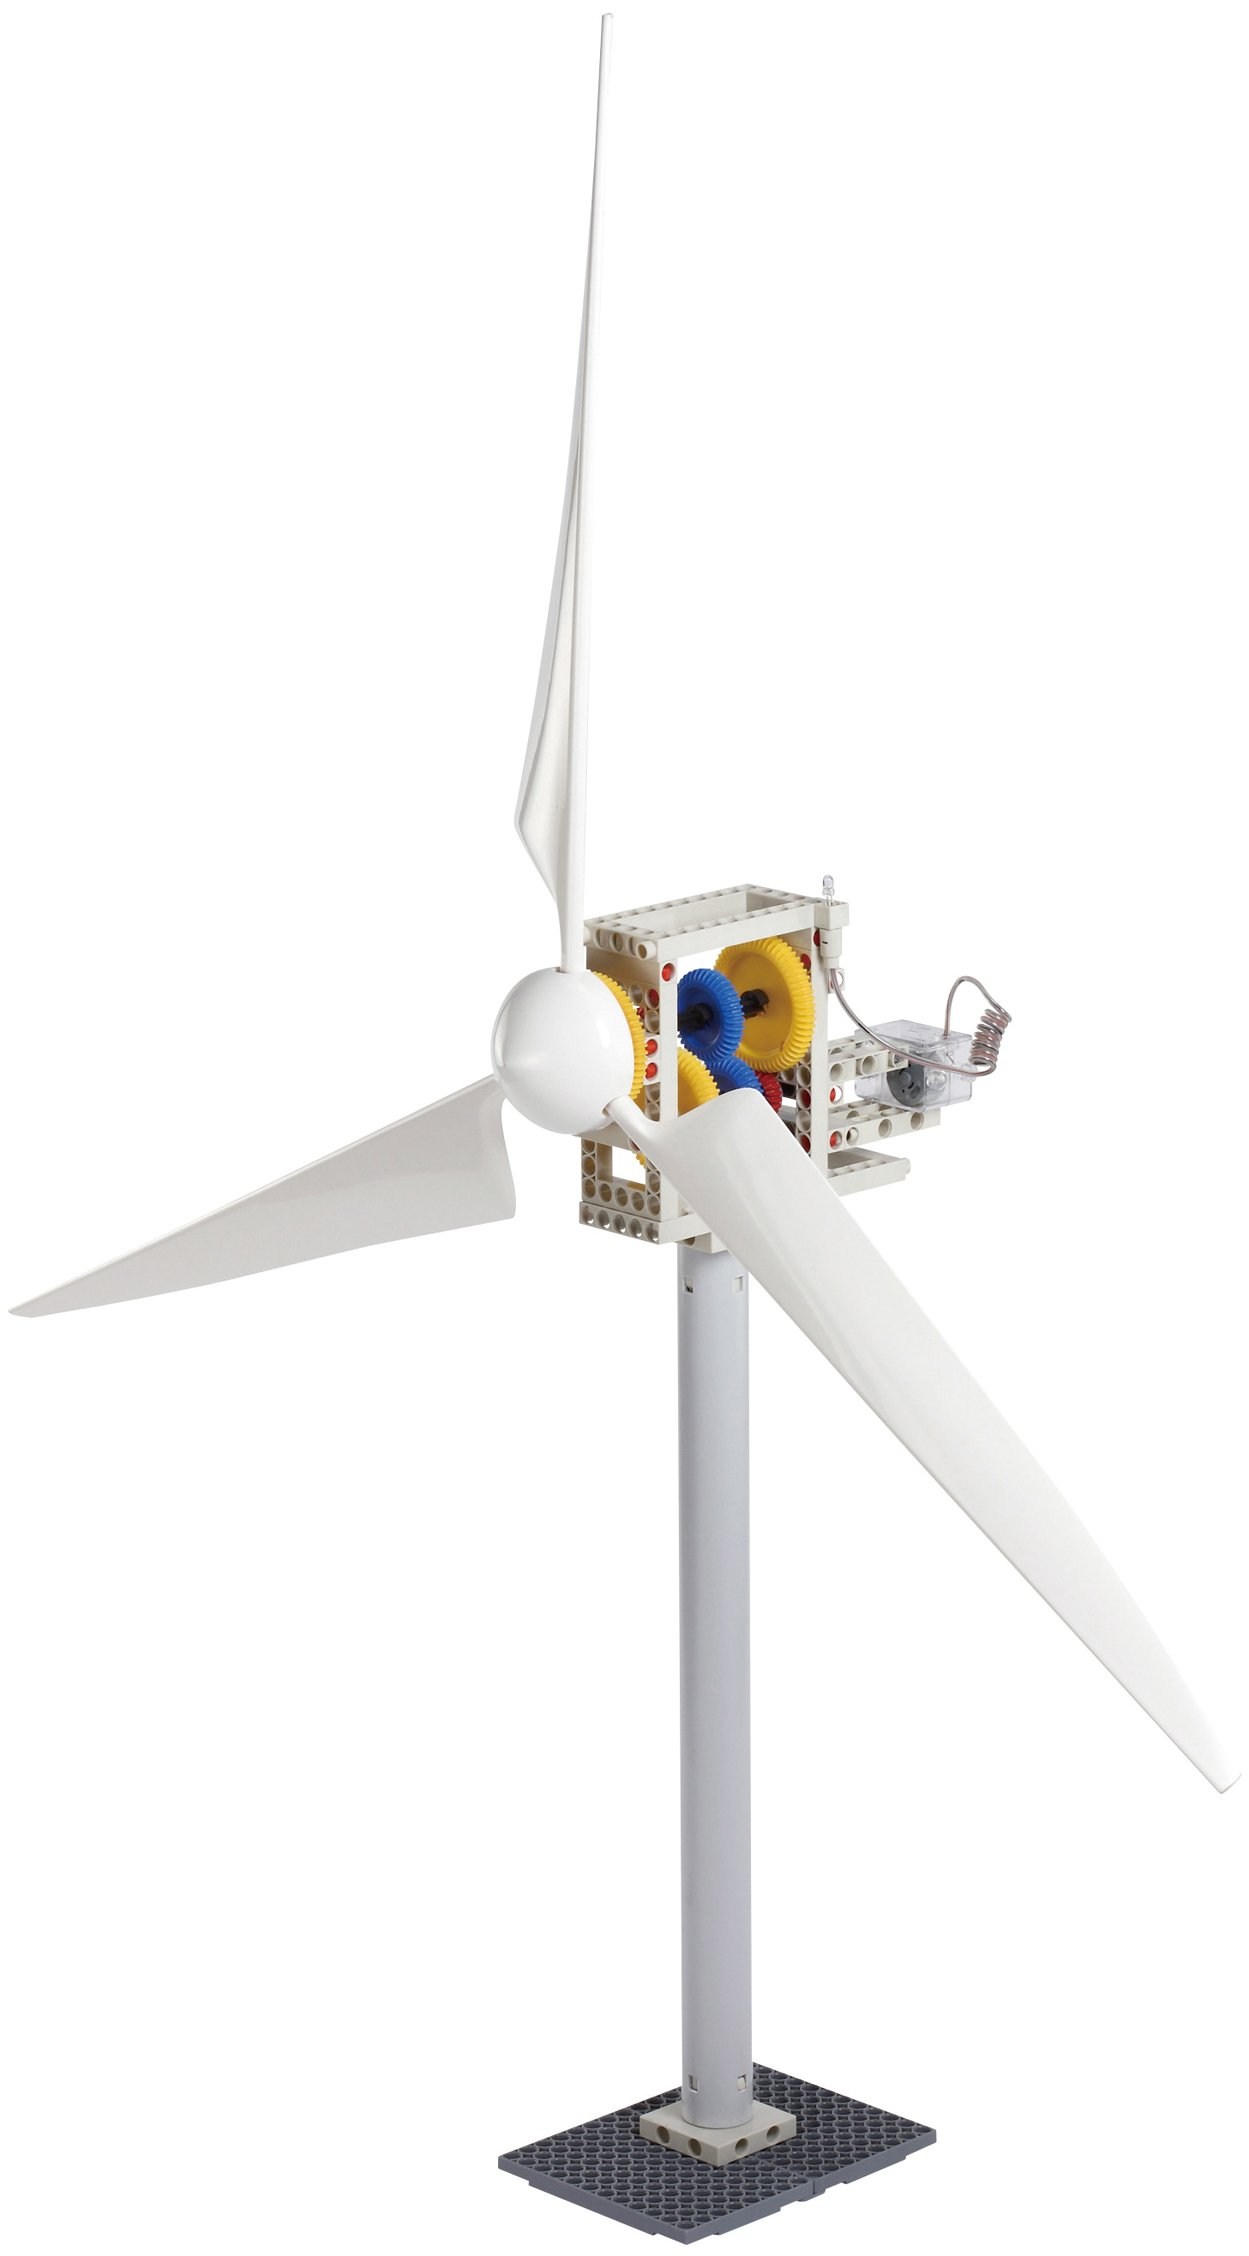 Thames & Kosmos Wind Power 2.0 Science Experiment Kit | Build Wind-Powered Generators to Energize Electric Vehicles | 3-Foot-Tall Long-Bladed Turbine | Experiments in Renewable Energy by Thames & Kosmos (Image #5)